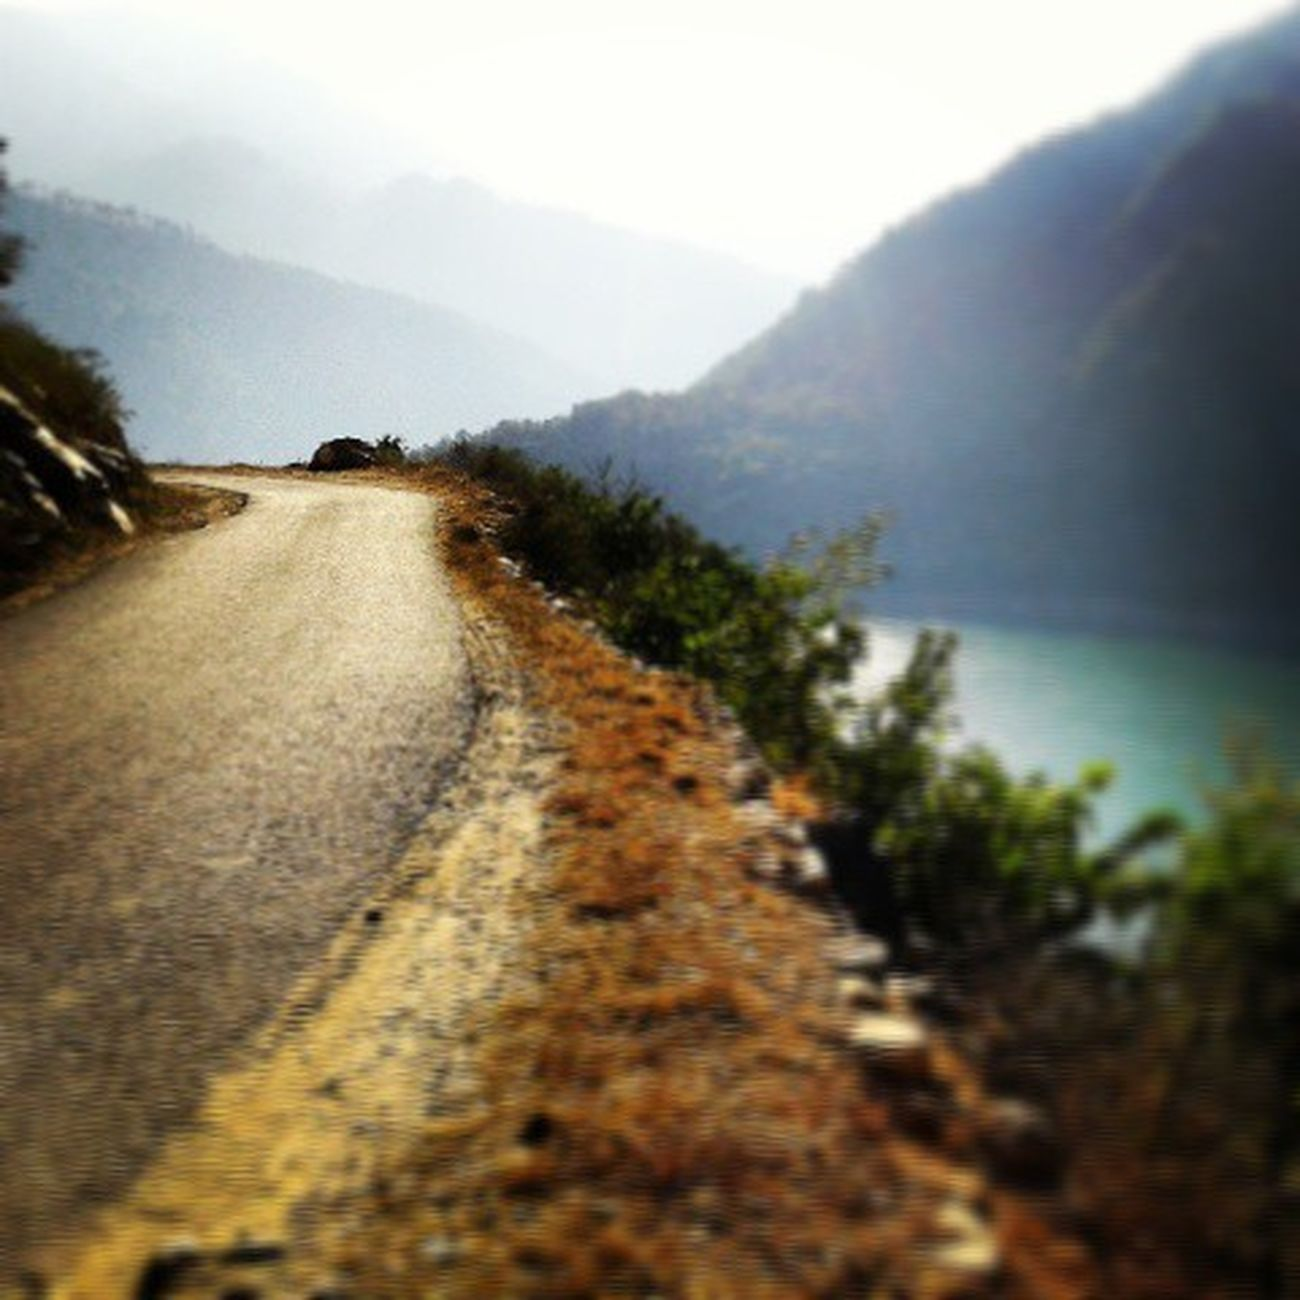 Roadlesstravelled Asphalt Road Riverside Riverroad Mist Mountains Hills Himalayas Ganges Heaven Beauty